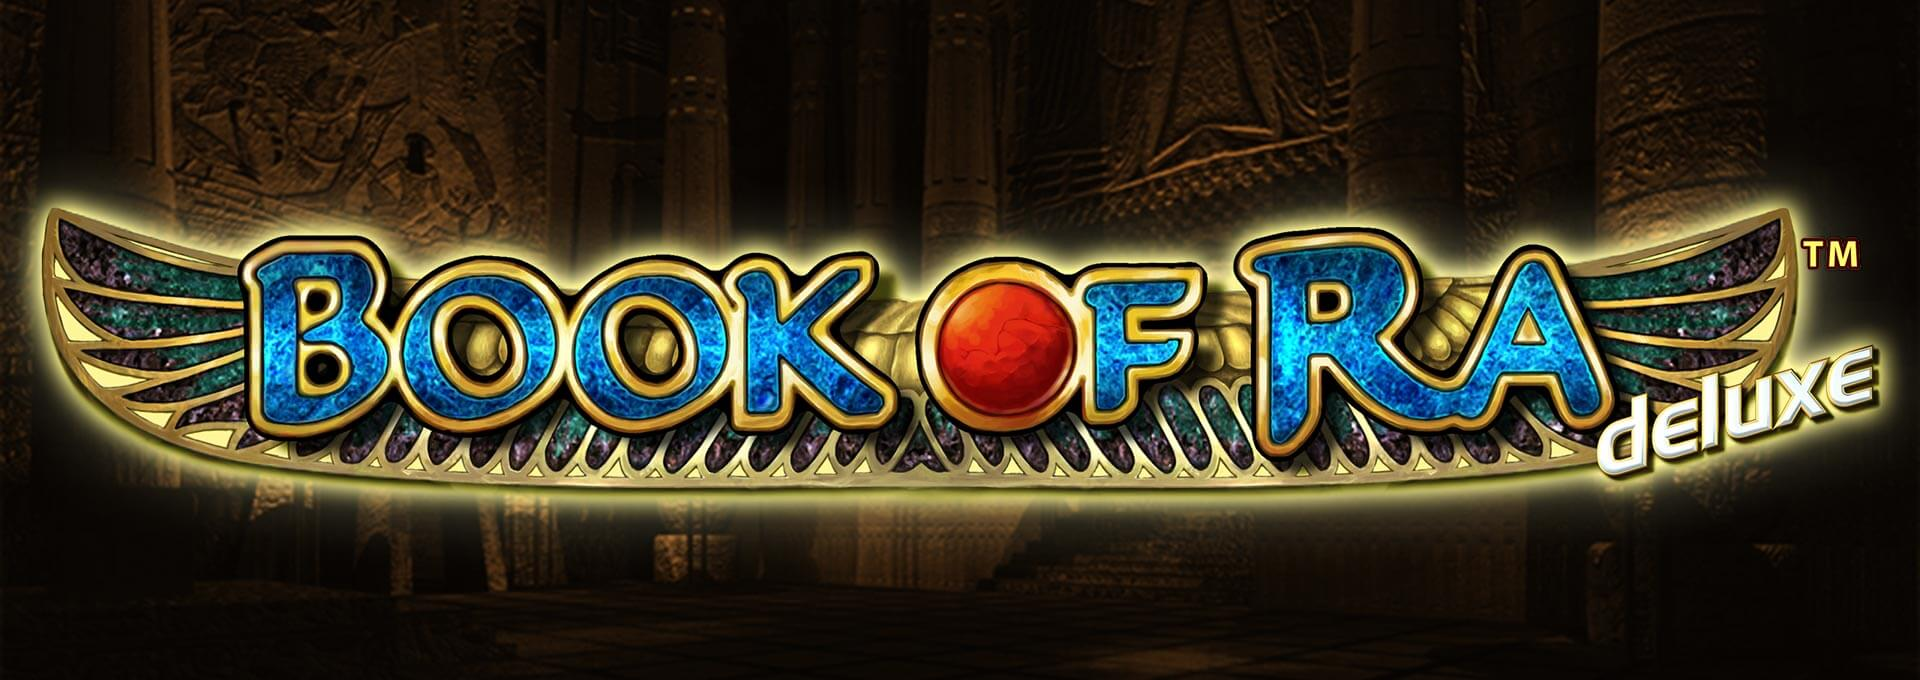 casino book of ra online online casino book of ra